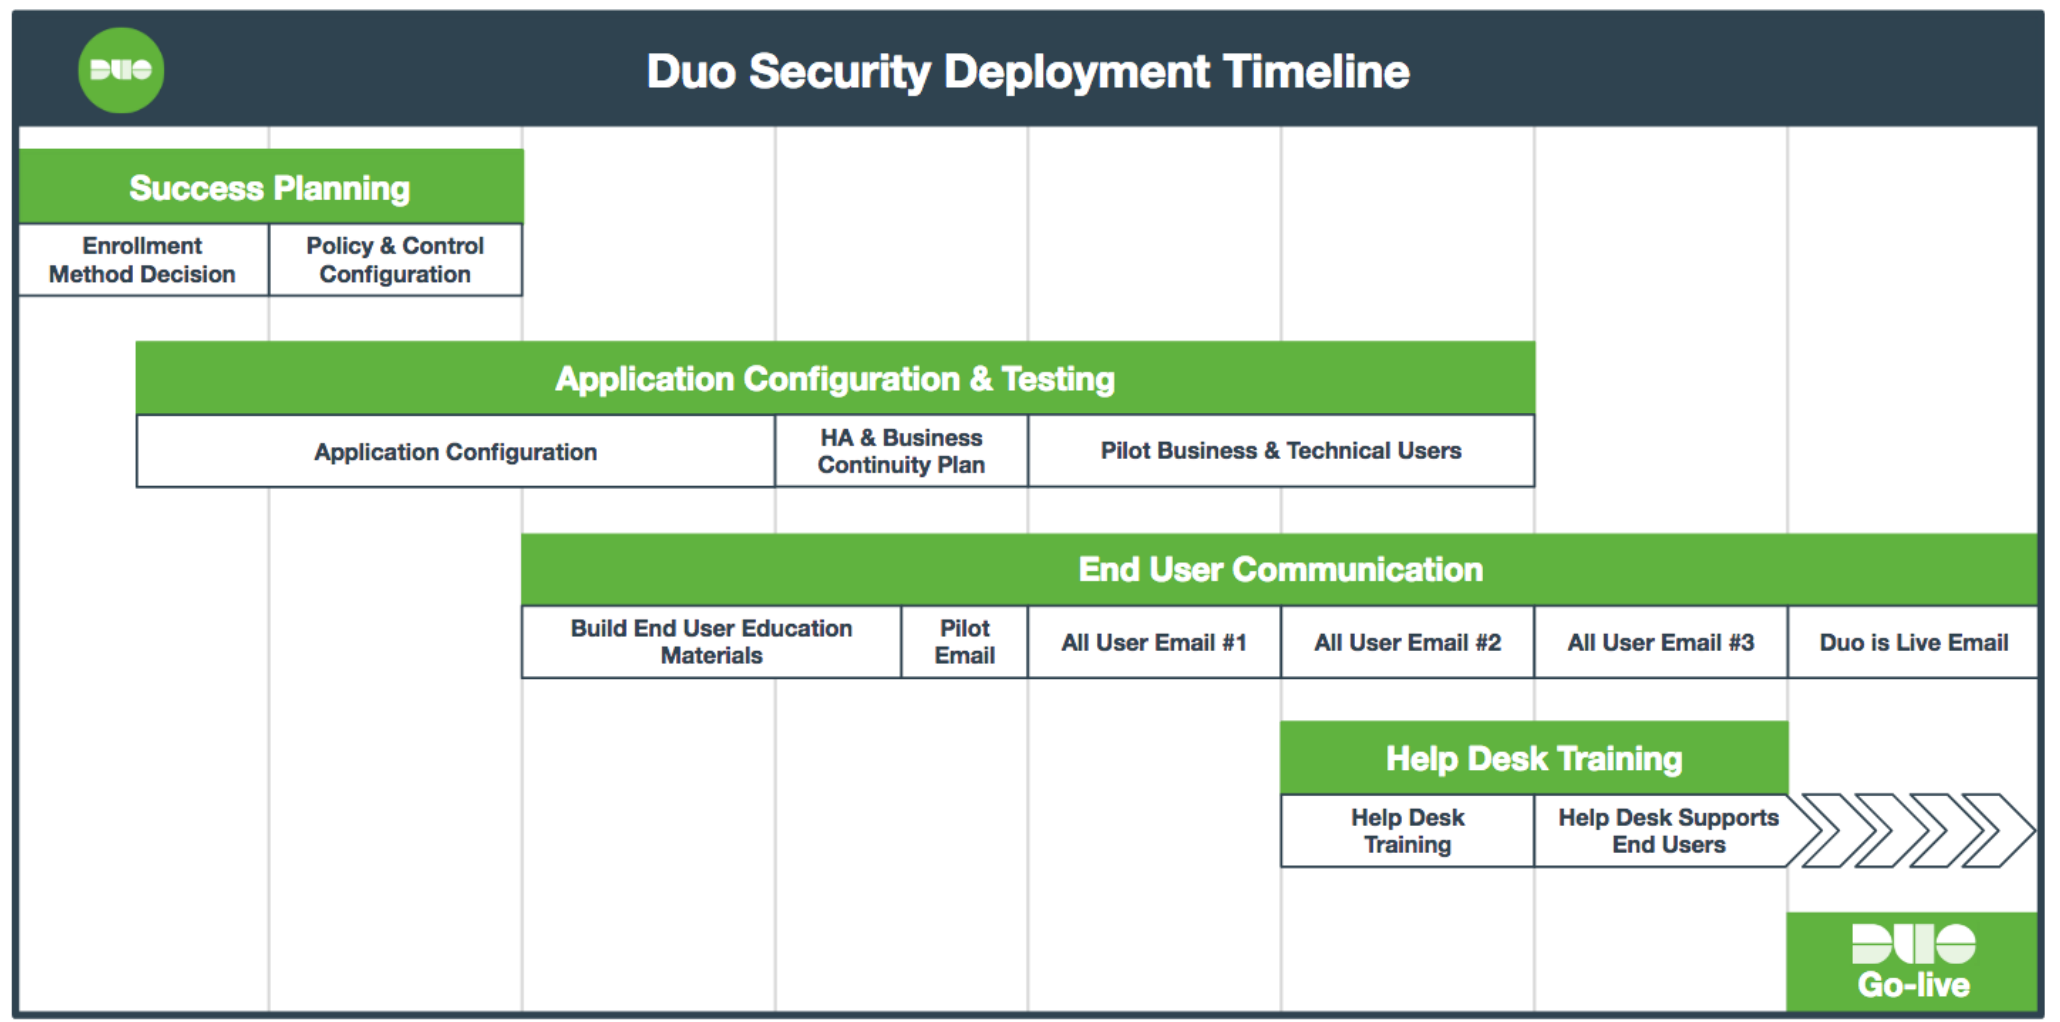 Duo Deployment Timeline